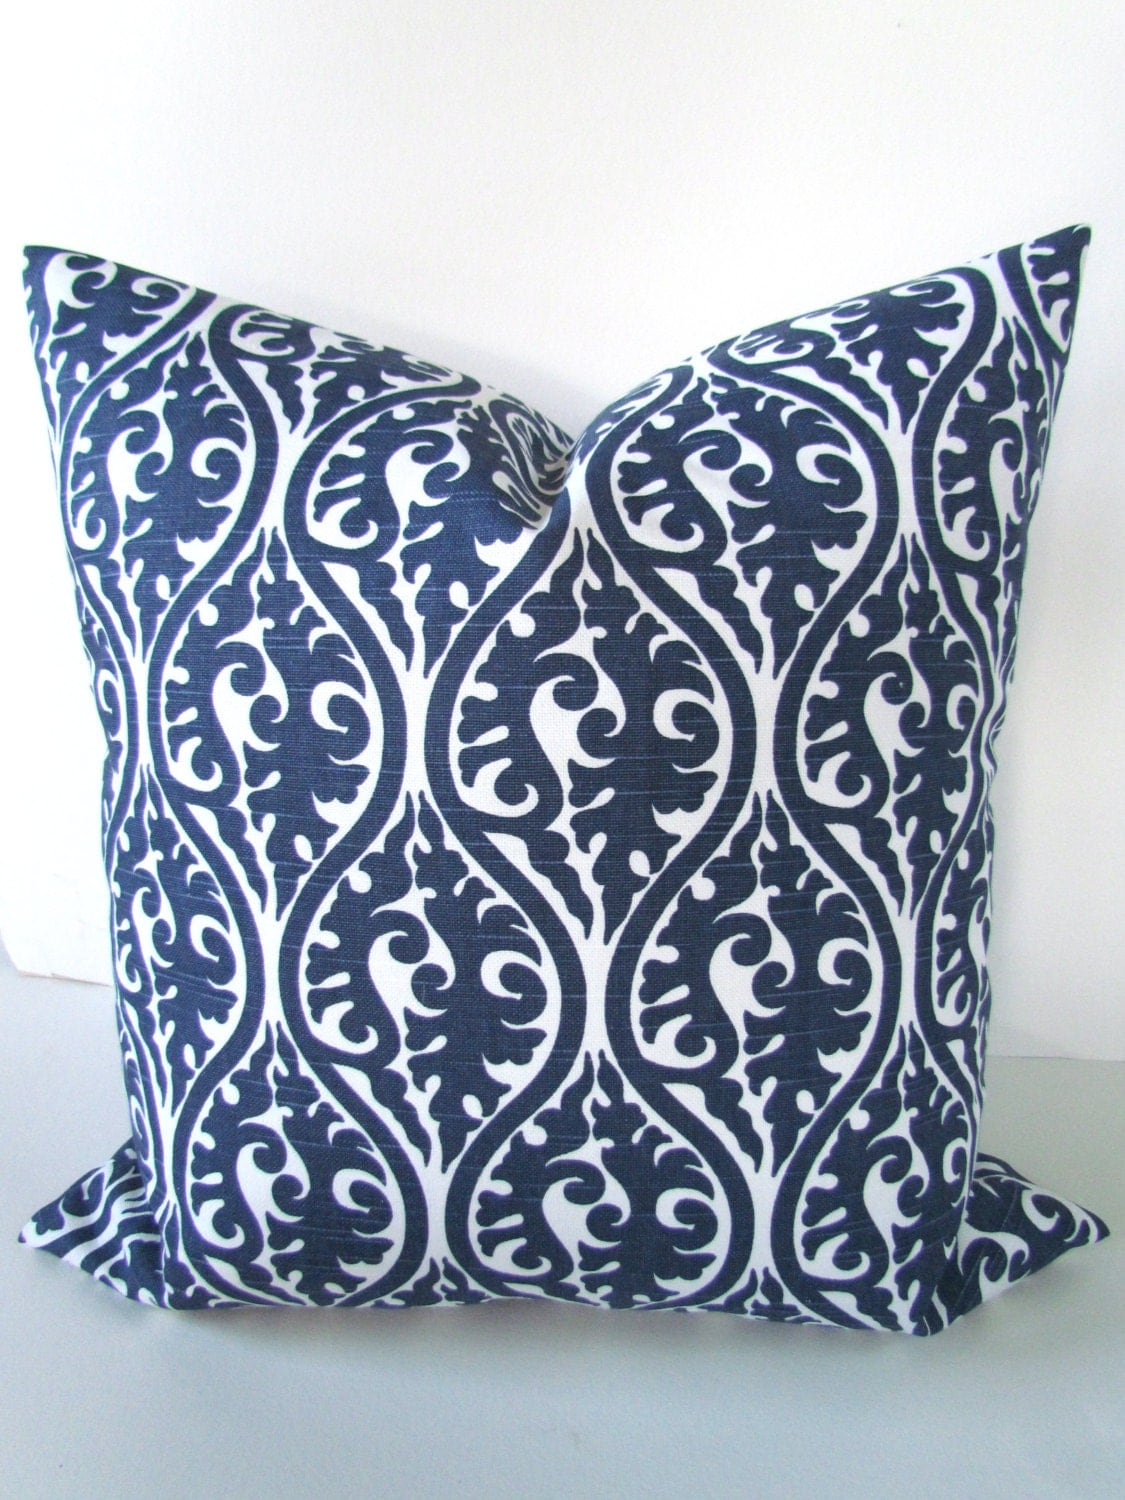 Decorative Pillows In Navy Blue : NAVY BLUE PILLOWS Blue Pillow Covers Blue Decorative Throw